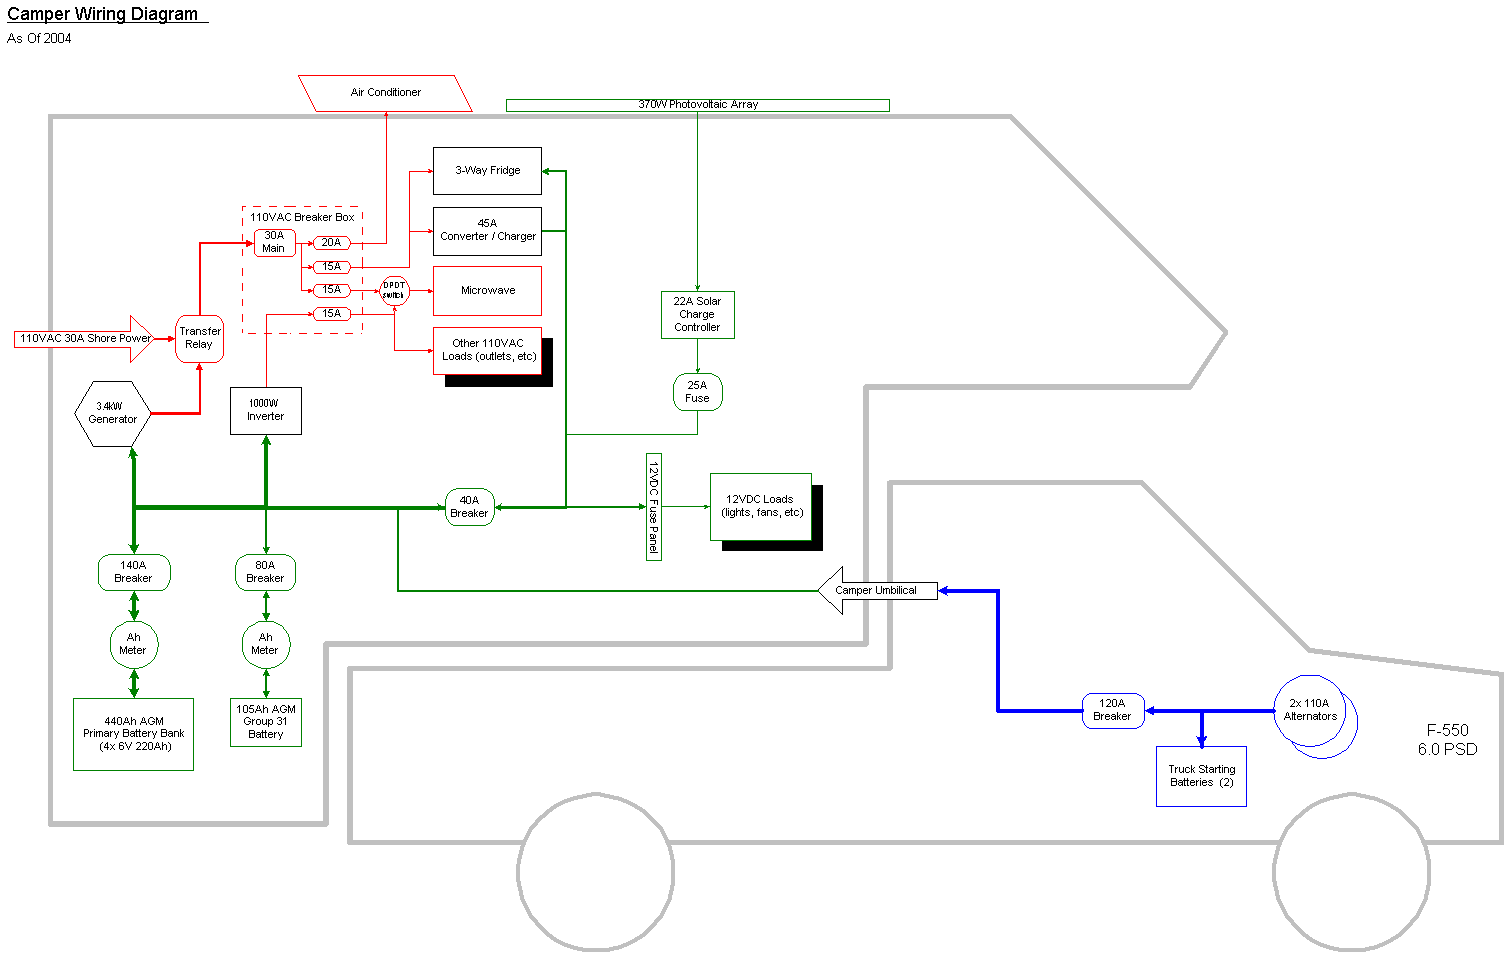 2004Diagram camper wiring diagram truck wiring diagrams instruction camper wiring harness diagram at crackthecode.co